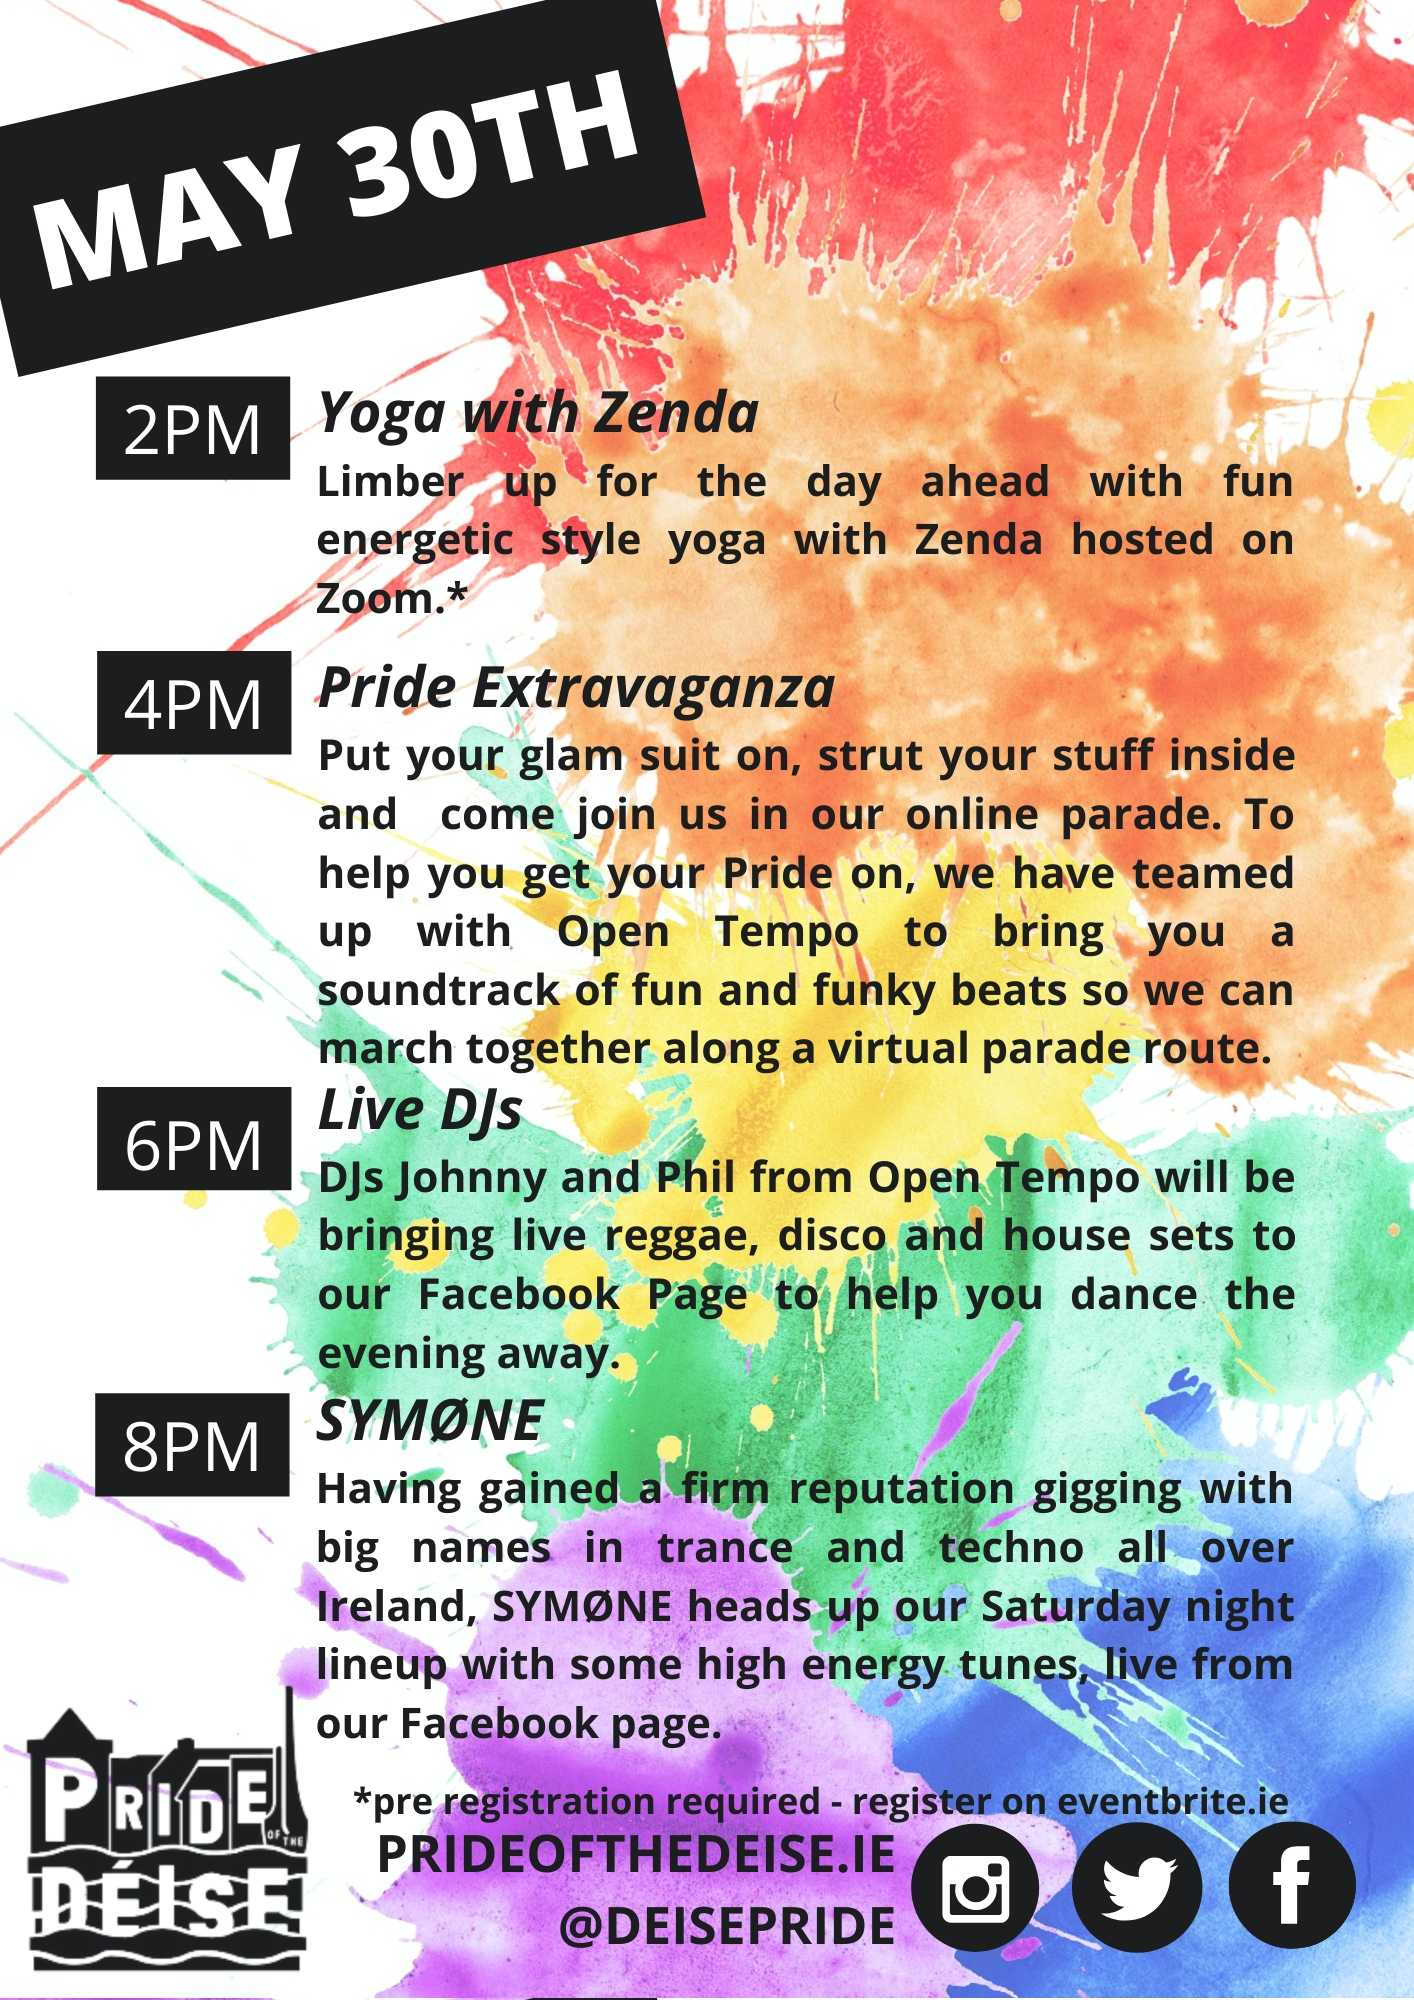 May 30th 2pm Yoga with Zenda Limber up for the day ahead with fun energetic style yoga with Zenda hosted on Zoom.* 4pm Pride Extravaganza Put your glam suit, strut your stuff inside and  come join us in our online parade. To help you get your Pride on, we have teamed up with Open Tempo to bring you a soundtrack of fun and funky beats so we can march together along a virtual parade route.6pm DJs from Open Tempo will be bringing live regge, disco and house sets to our Facebook Page to help you dance the evening away.8pm SYMØNE Having gained a firm reputation gigging with big names in trance and techno all over Ireland, SYMØNE heads up our Saturday night lineup with some high energy tunes.